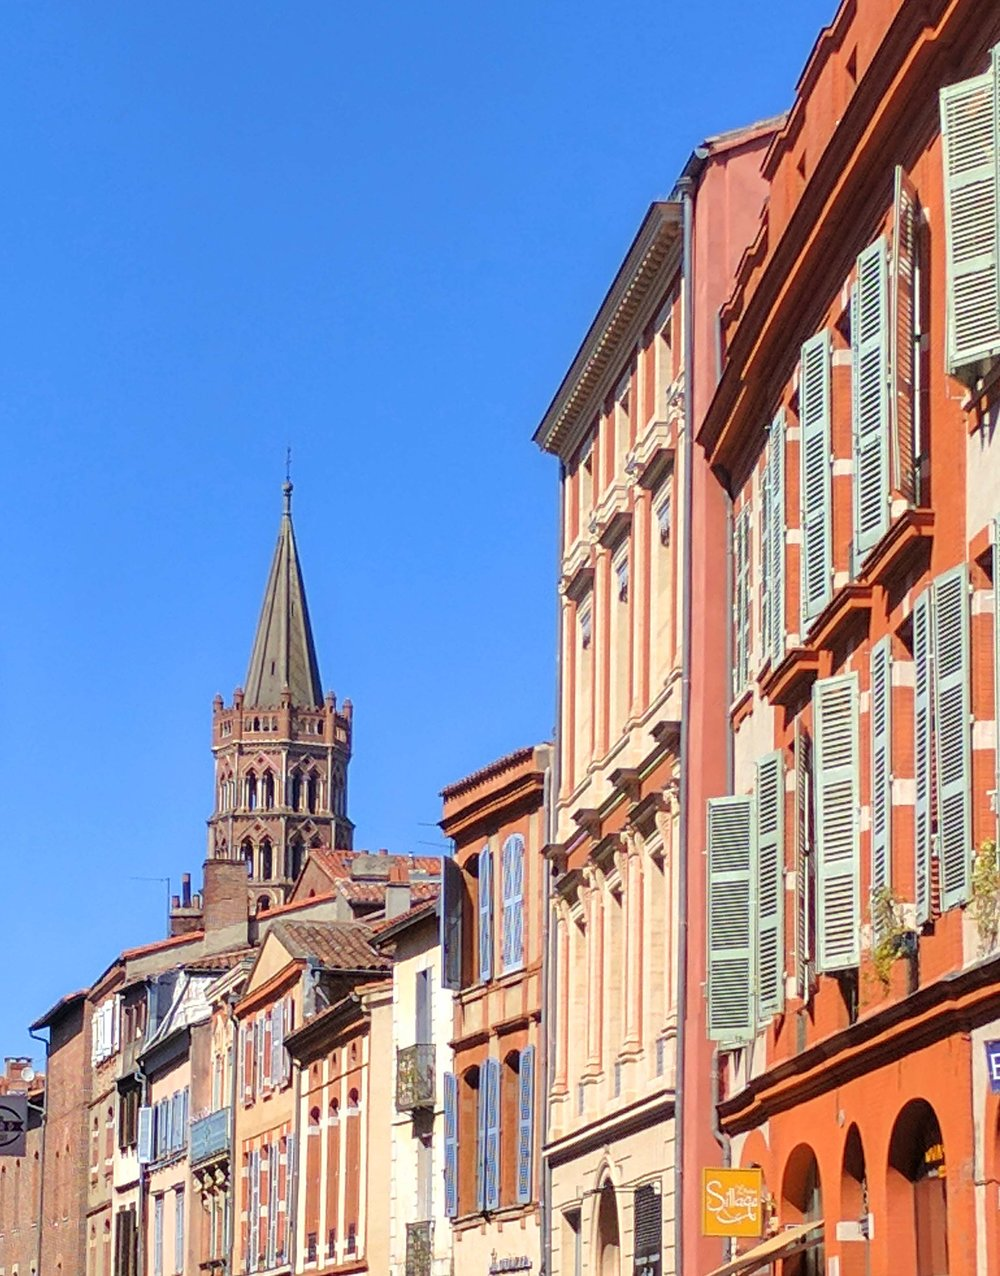 Streets of old town Toulouse